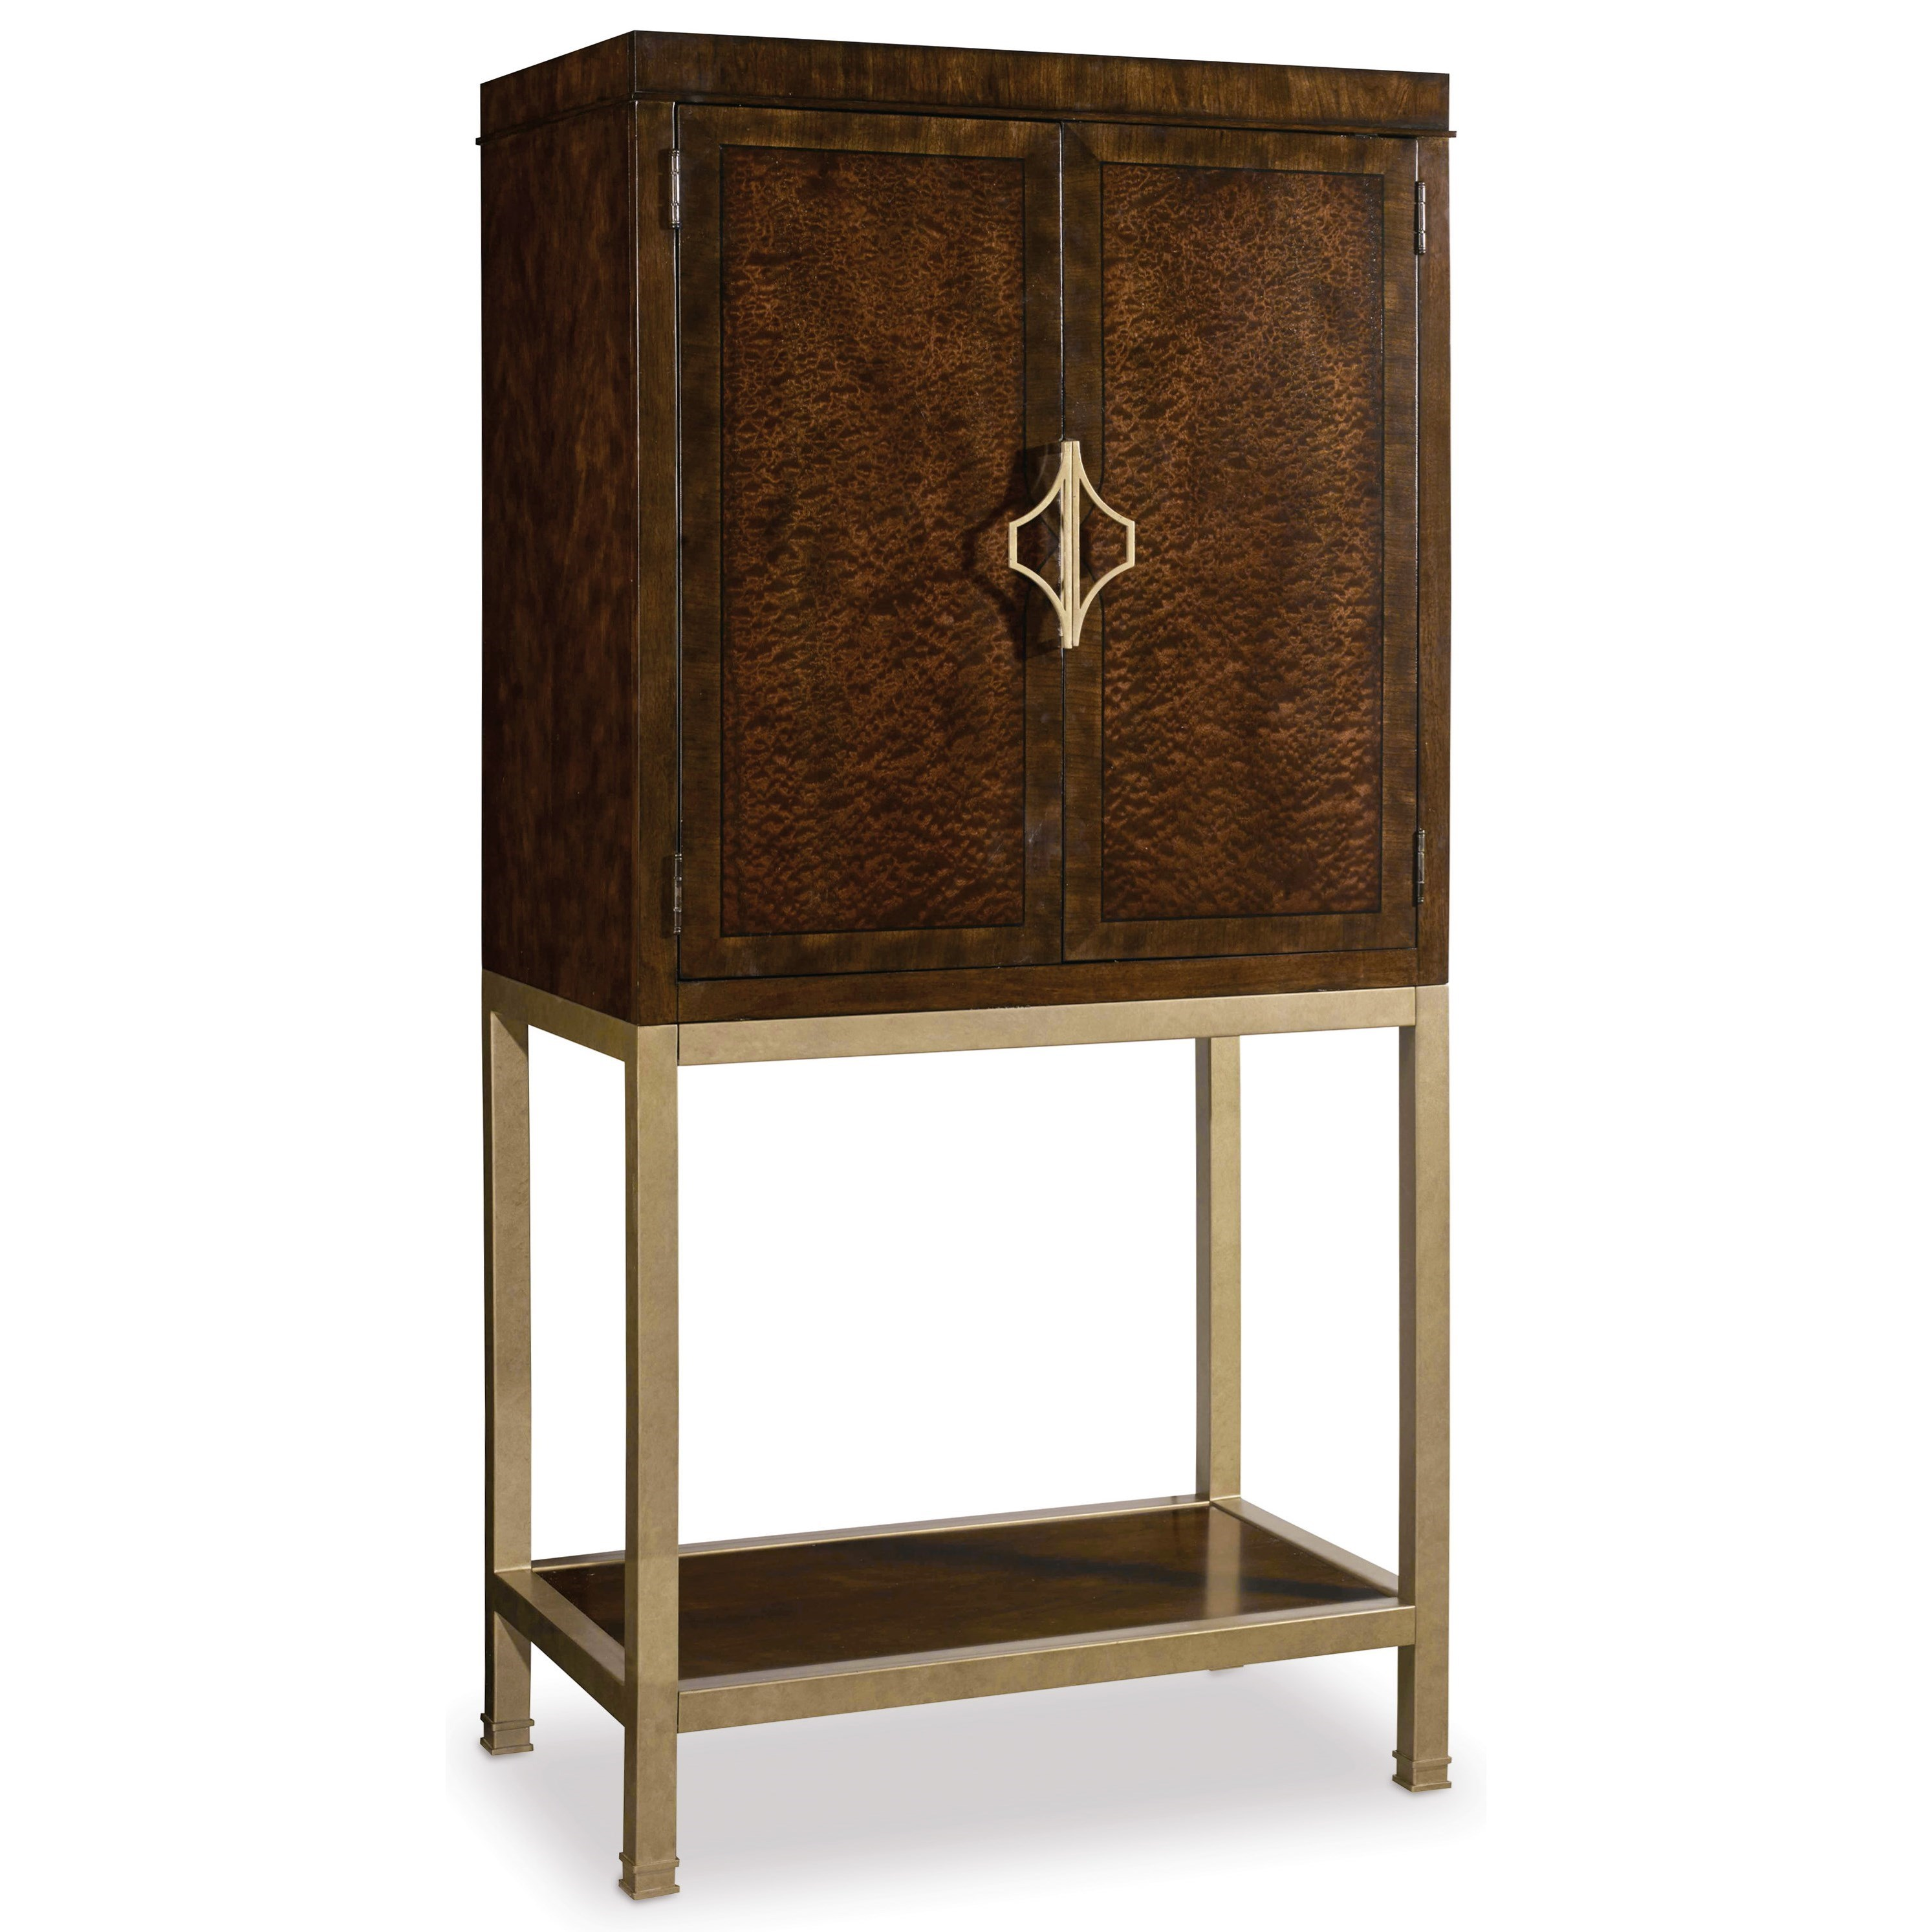 Hooker Furniture Skyline Bar Cabinet - Item Number: 5336-75160